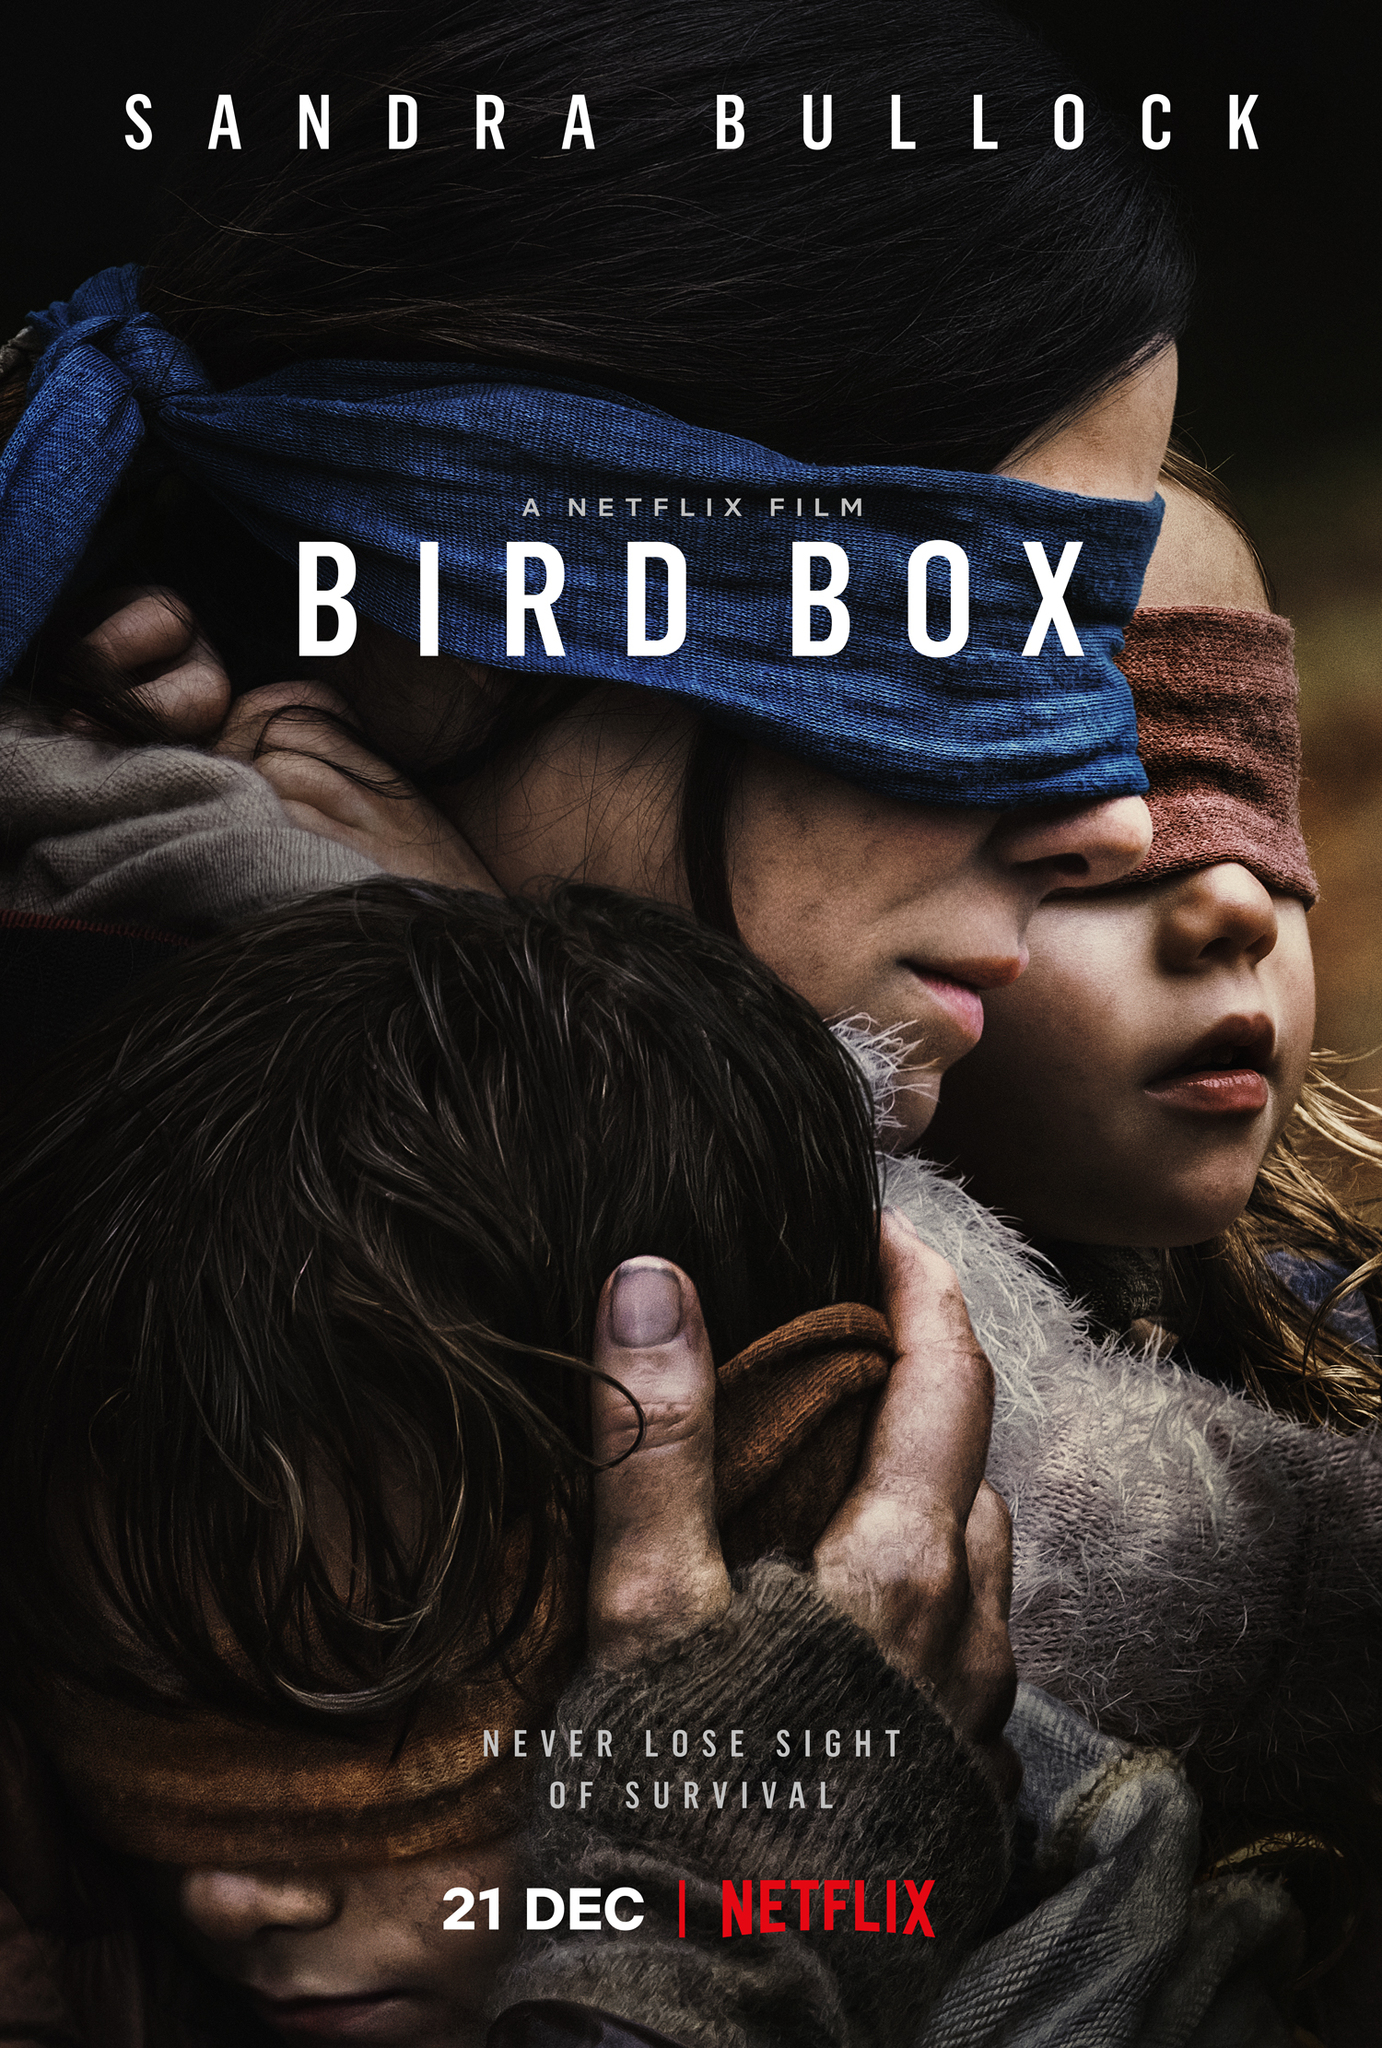 My Bird box opinions